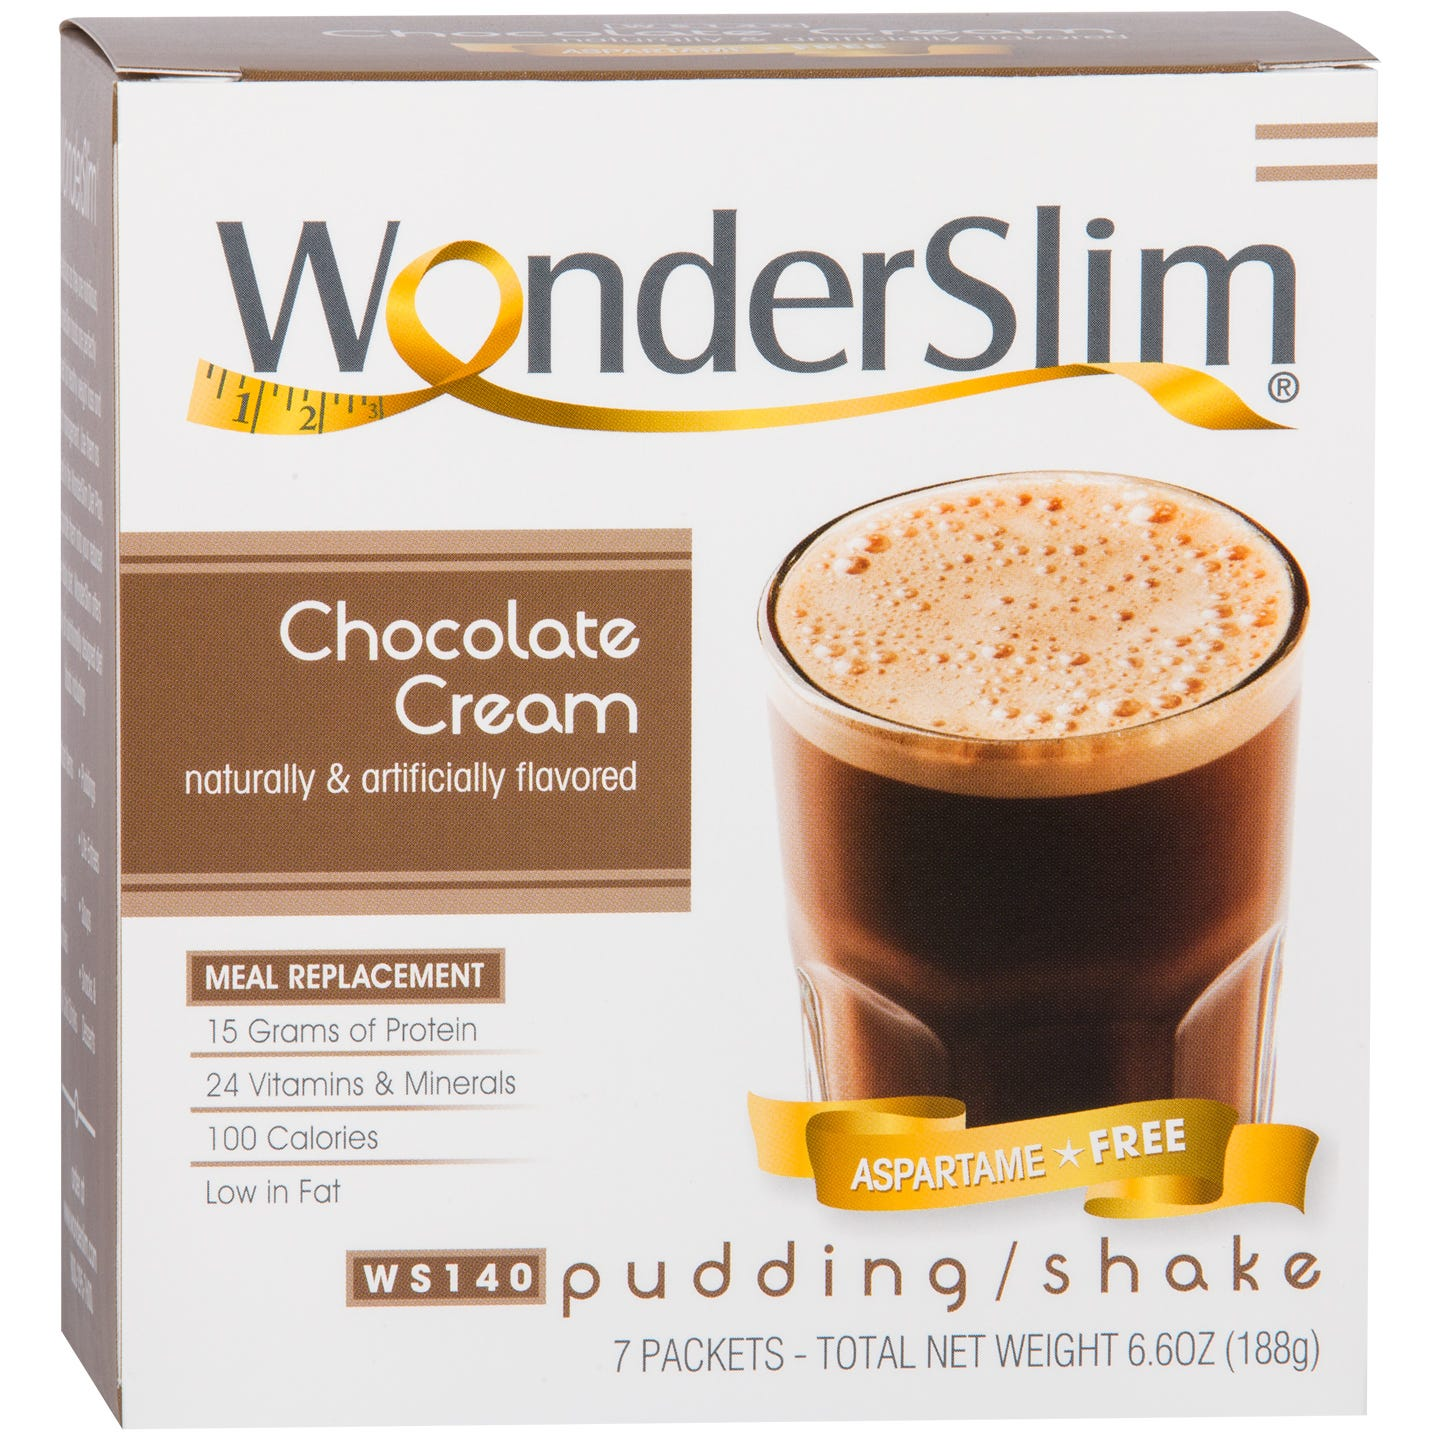 WonderSlim Aspartame-Free Meal Replacement Pudding/Shake Chocolate Cream (7 ct) - Rapid Diet Weight Loss Products Shop